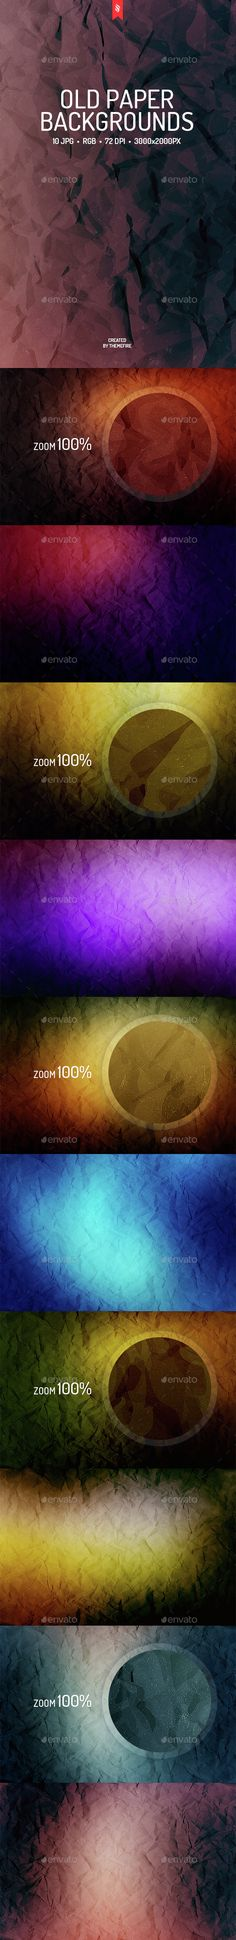 10 Old Paper Backgrounds. Download here: http://graphicriver.net/item/10-old-paper-backgrounds/14964210?ref=ksioks